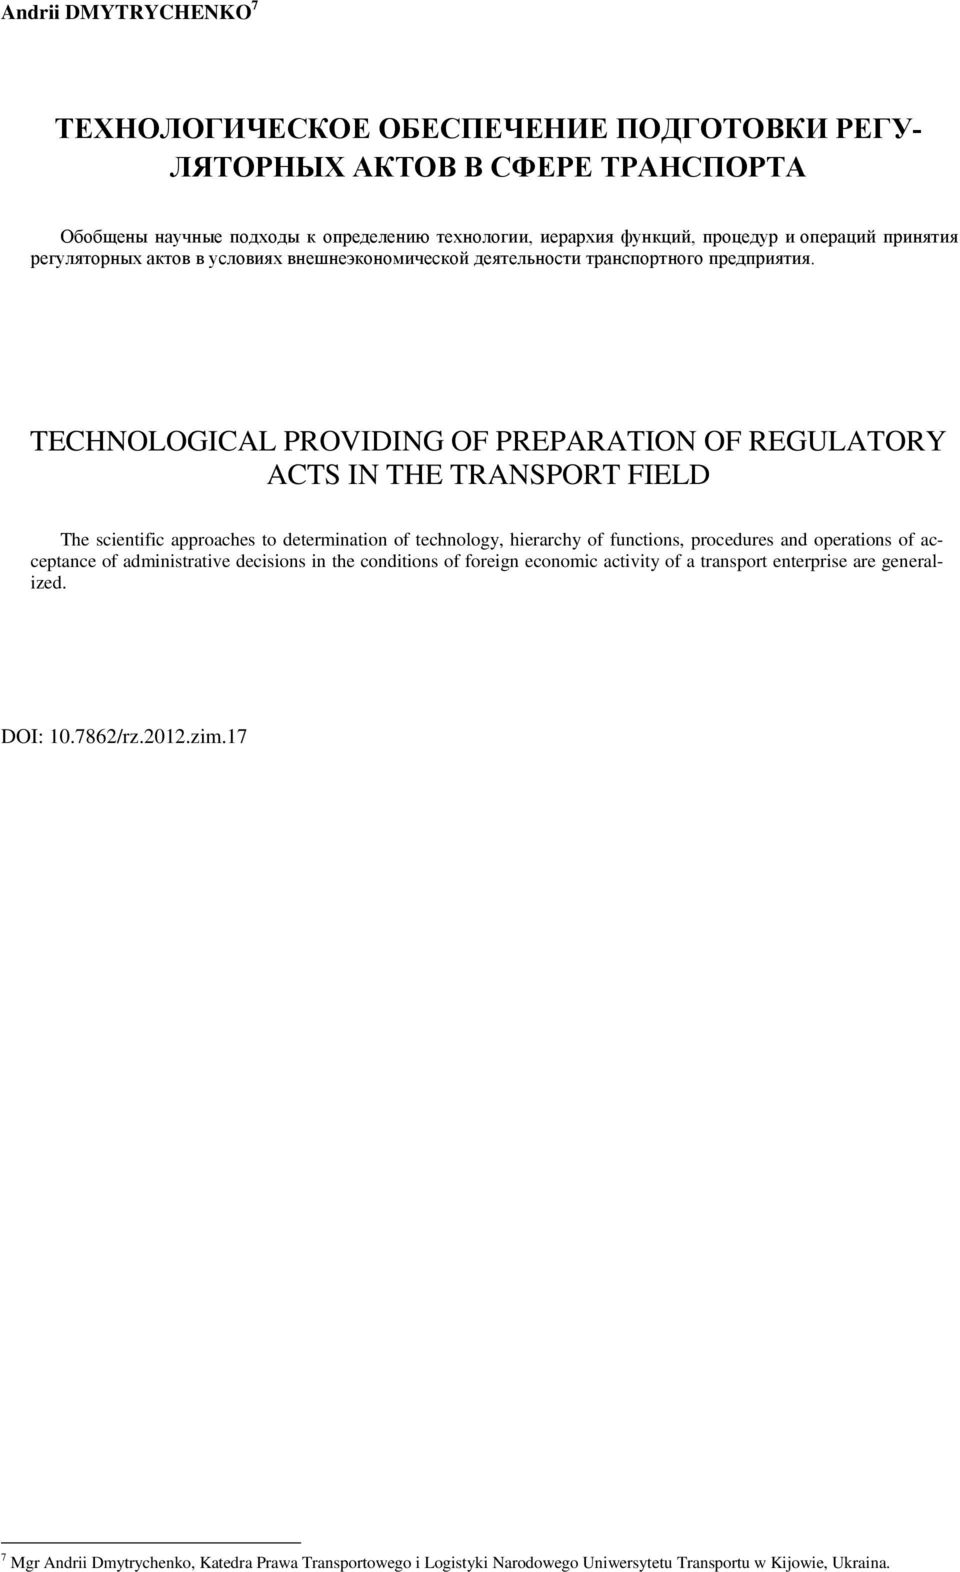 TECHNOLOGICAL PROVIDING OF PREPARATION OF REGULATORY ACTS IN THE TRANSPORT FIELD The scientific approaches to determination of technology, hierarchy of functions, procedures and operations